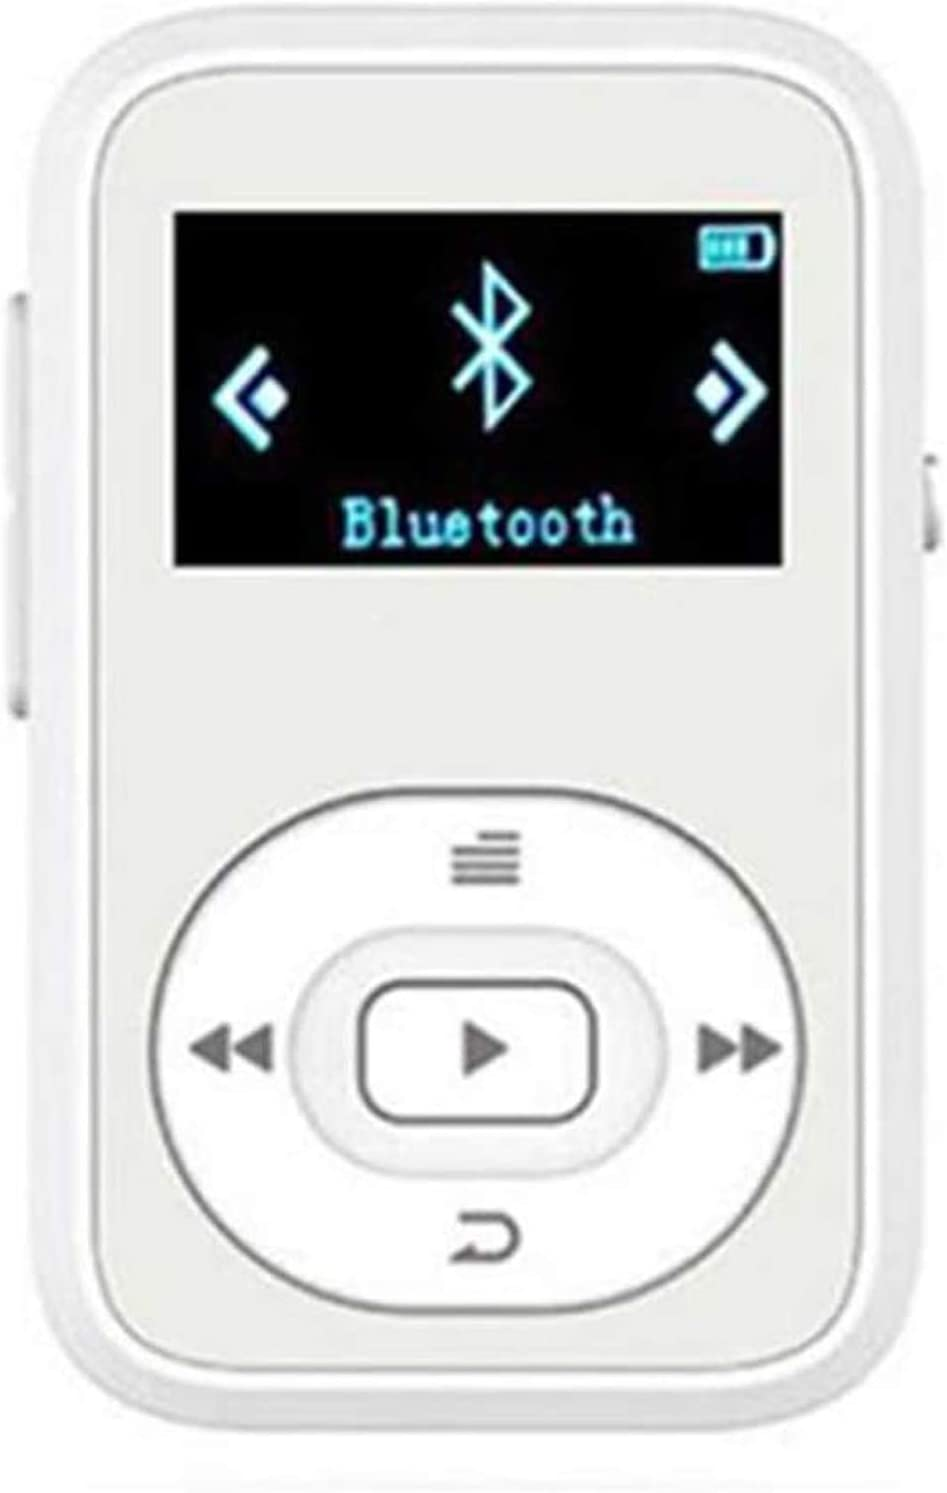 Mini Bluetooth MP3 Player, 22g Ultra Light 8GB Sport mp3 Music Player, Lossless sound quality, with Recorder, Clip, FM Radio, Support TF Card, Fast...